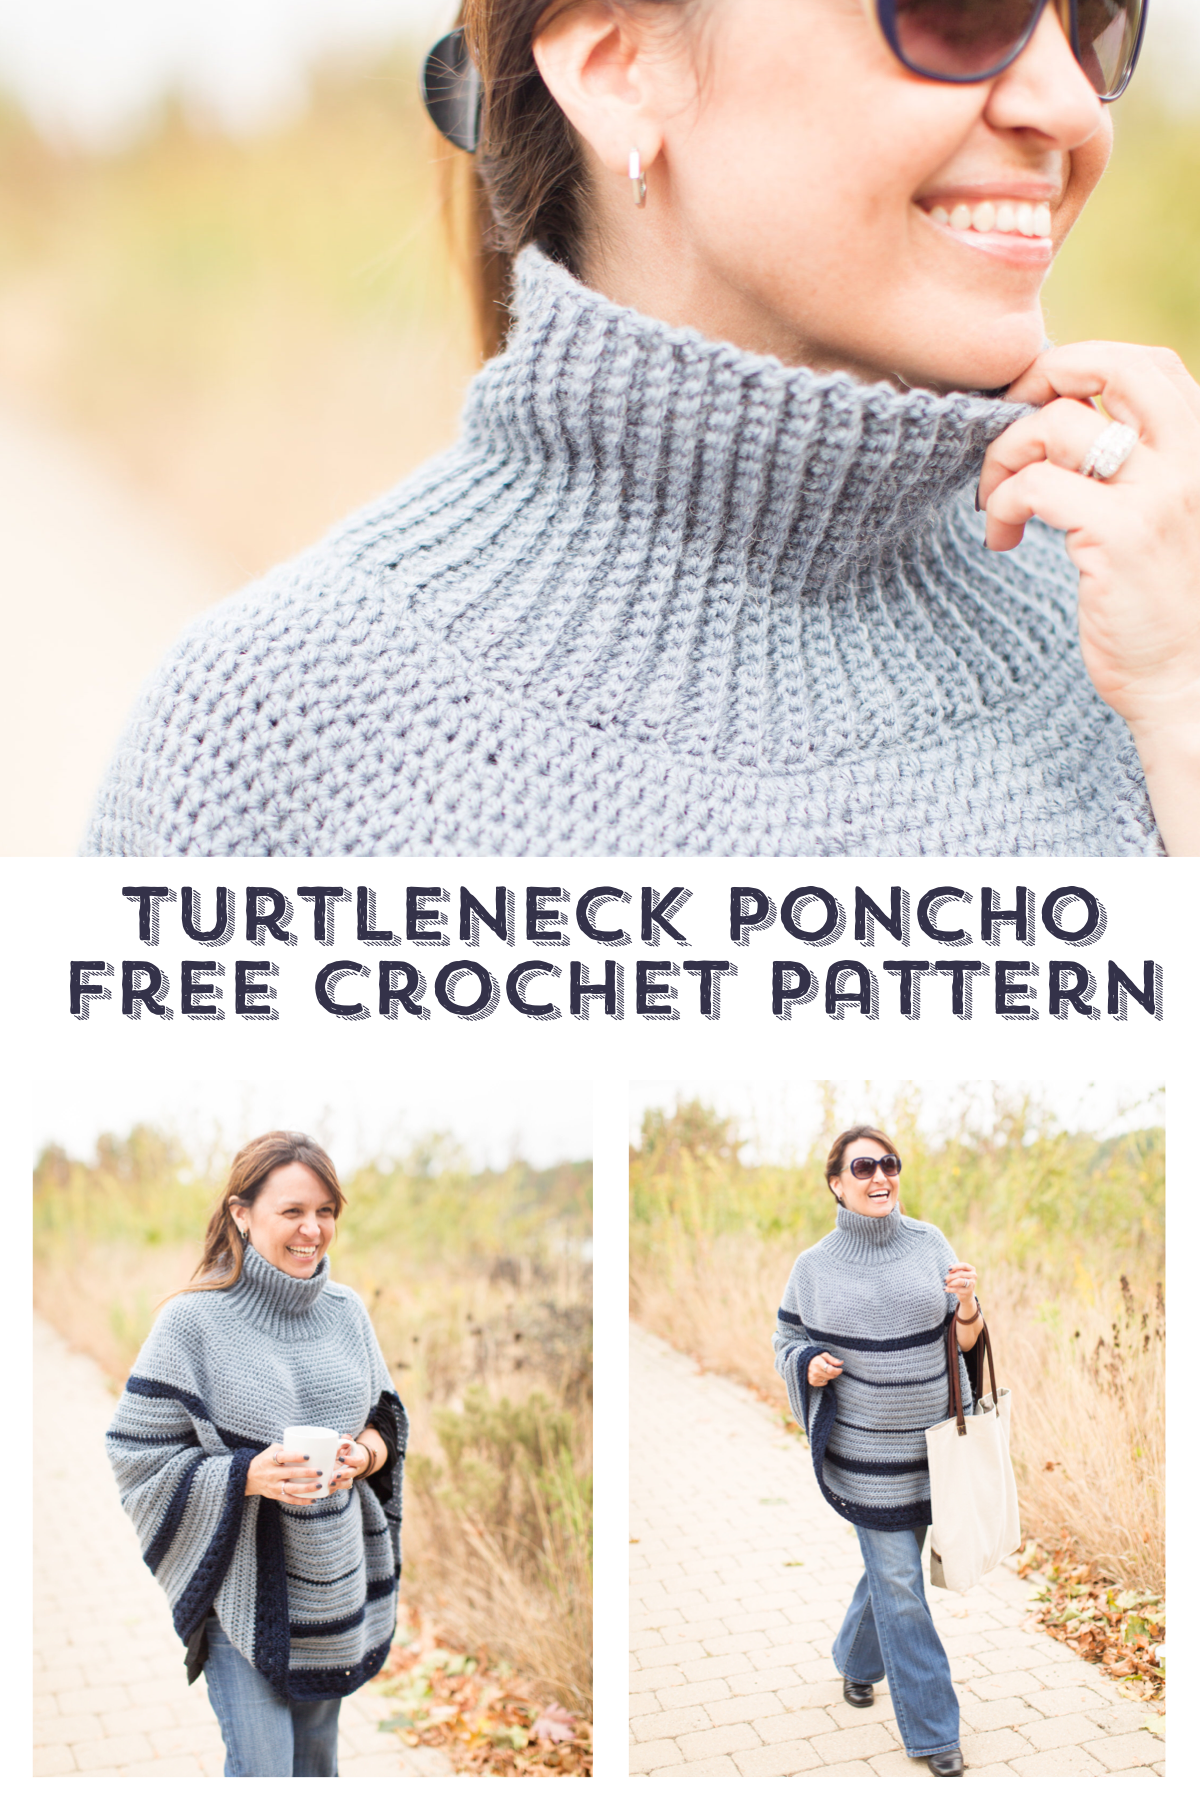 Turtleneck-poncho-free-crochet-pattern-2.png